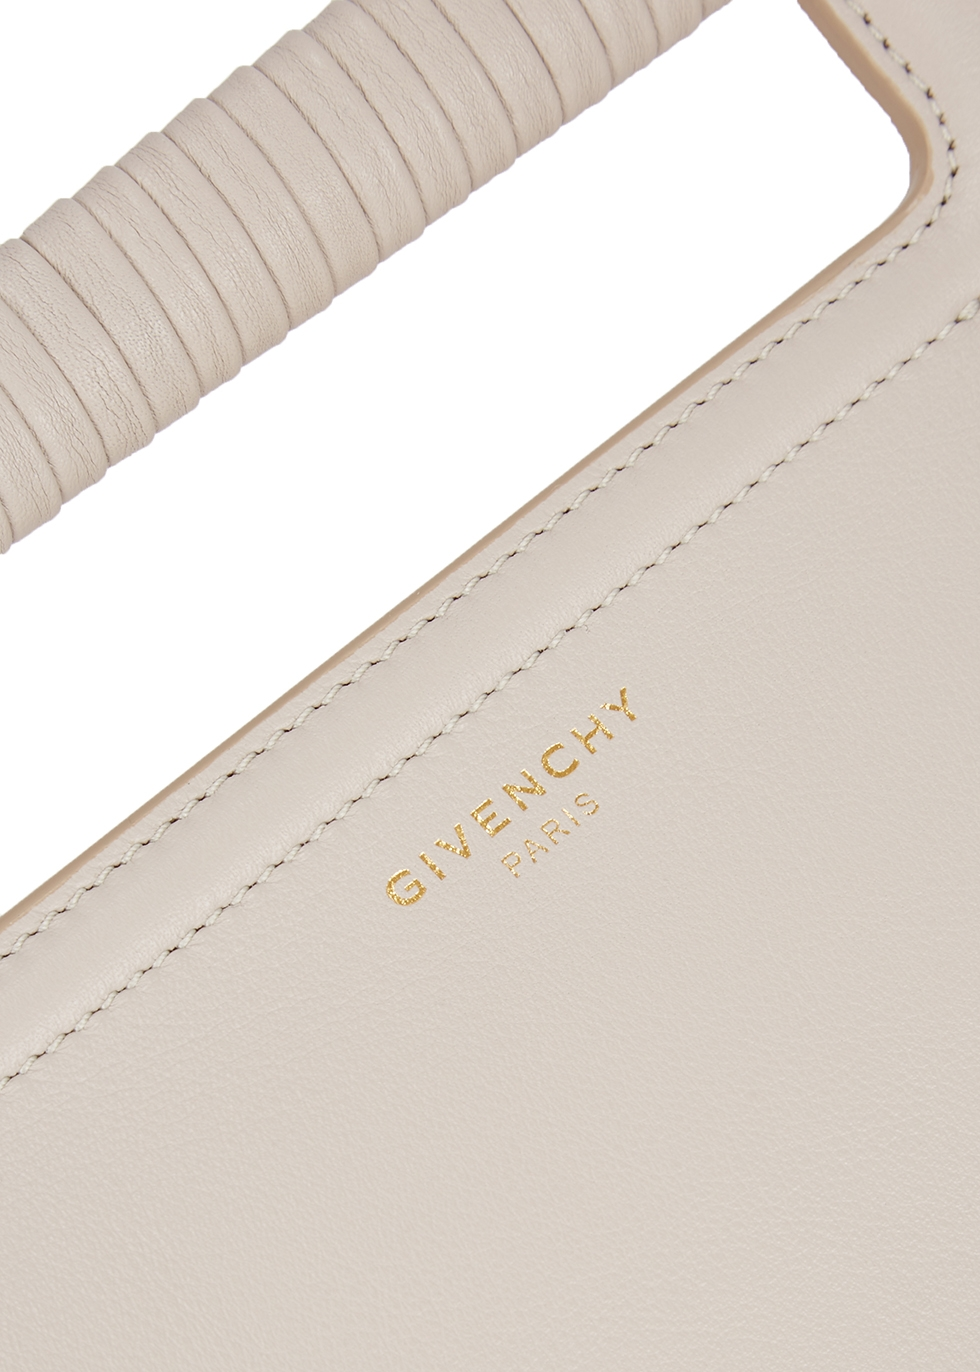 Whip medium leather top handle bag - Givenchy